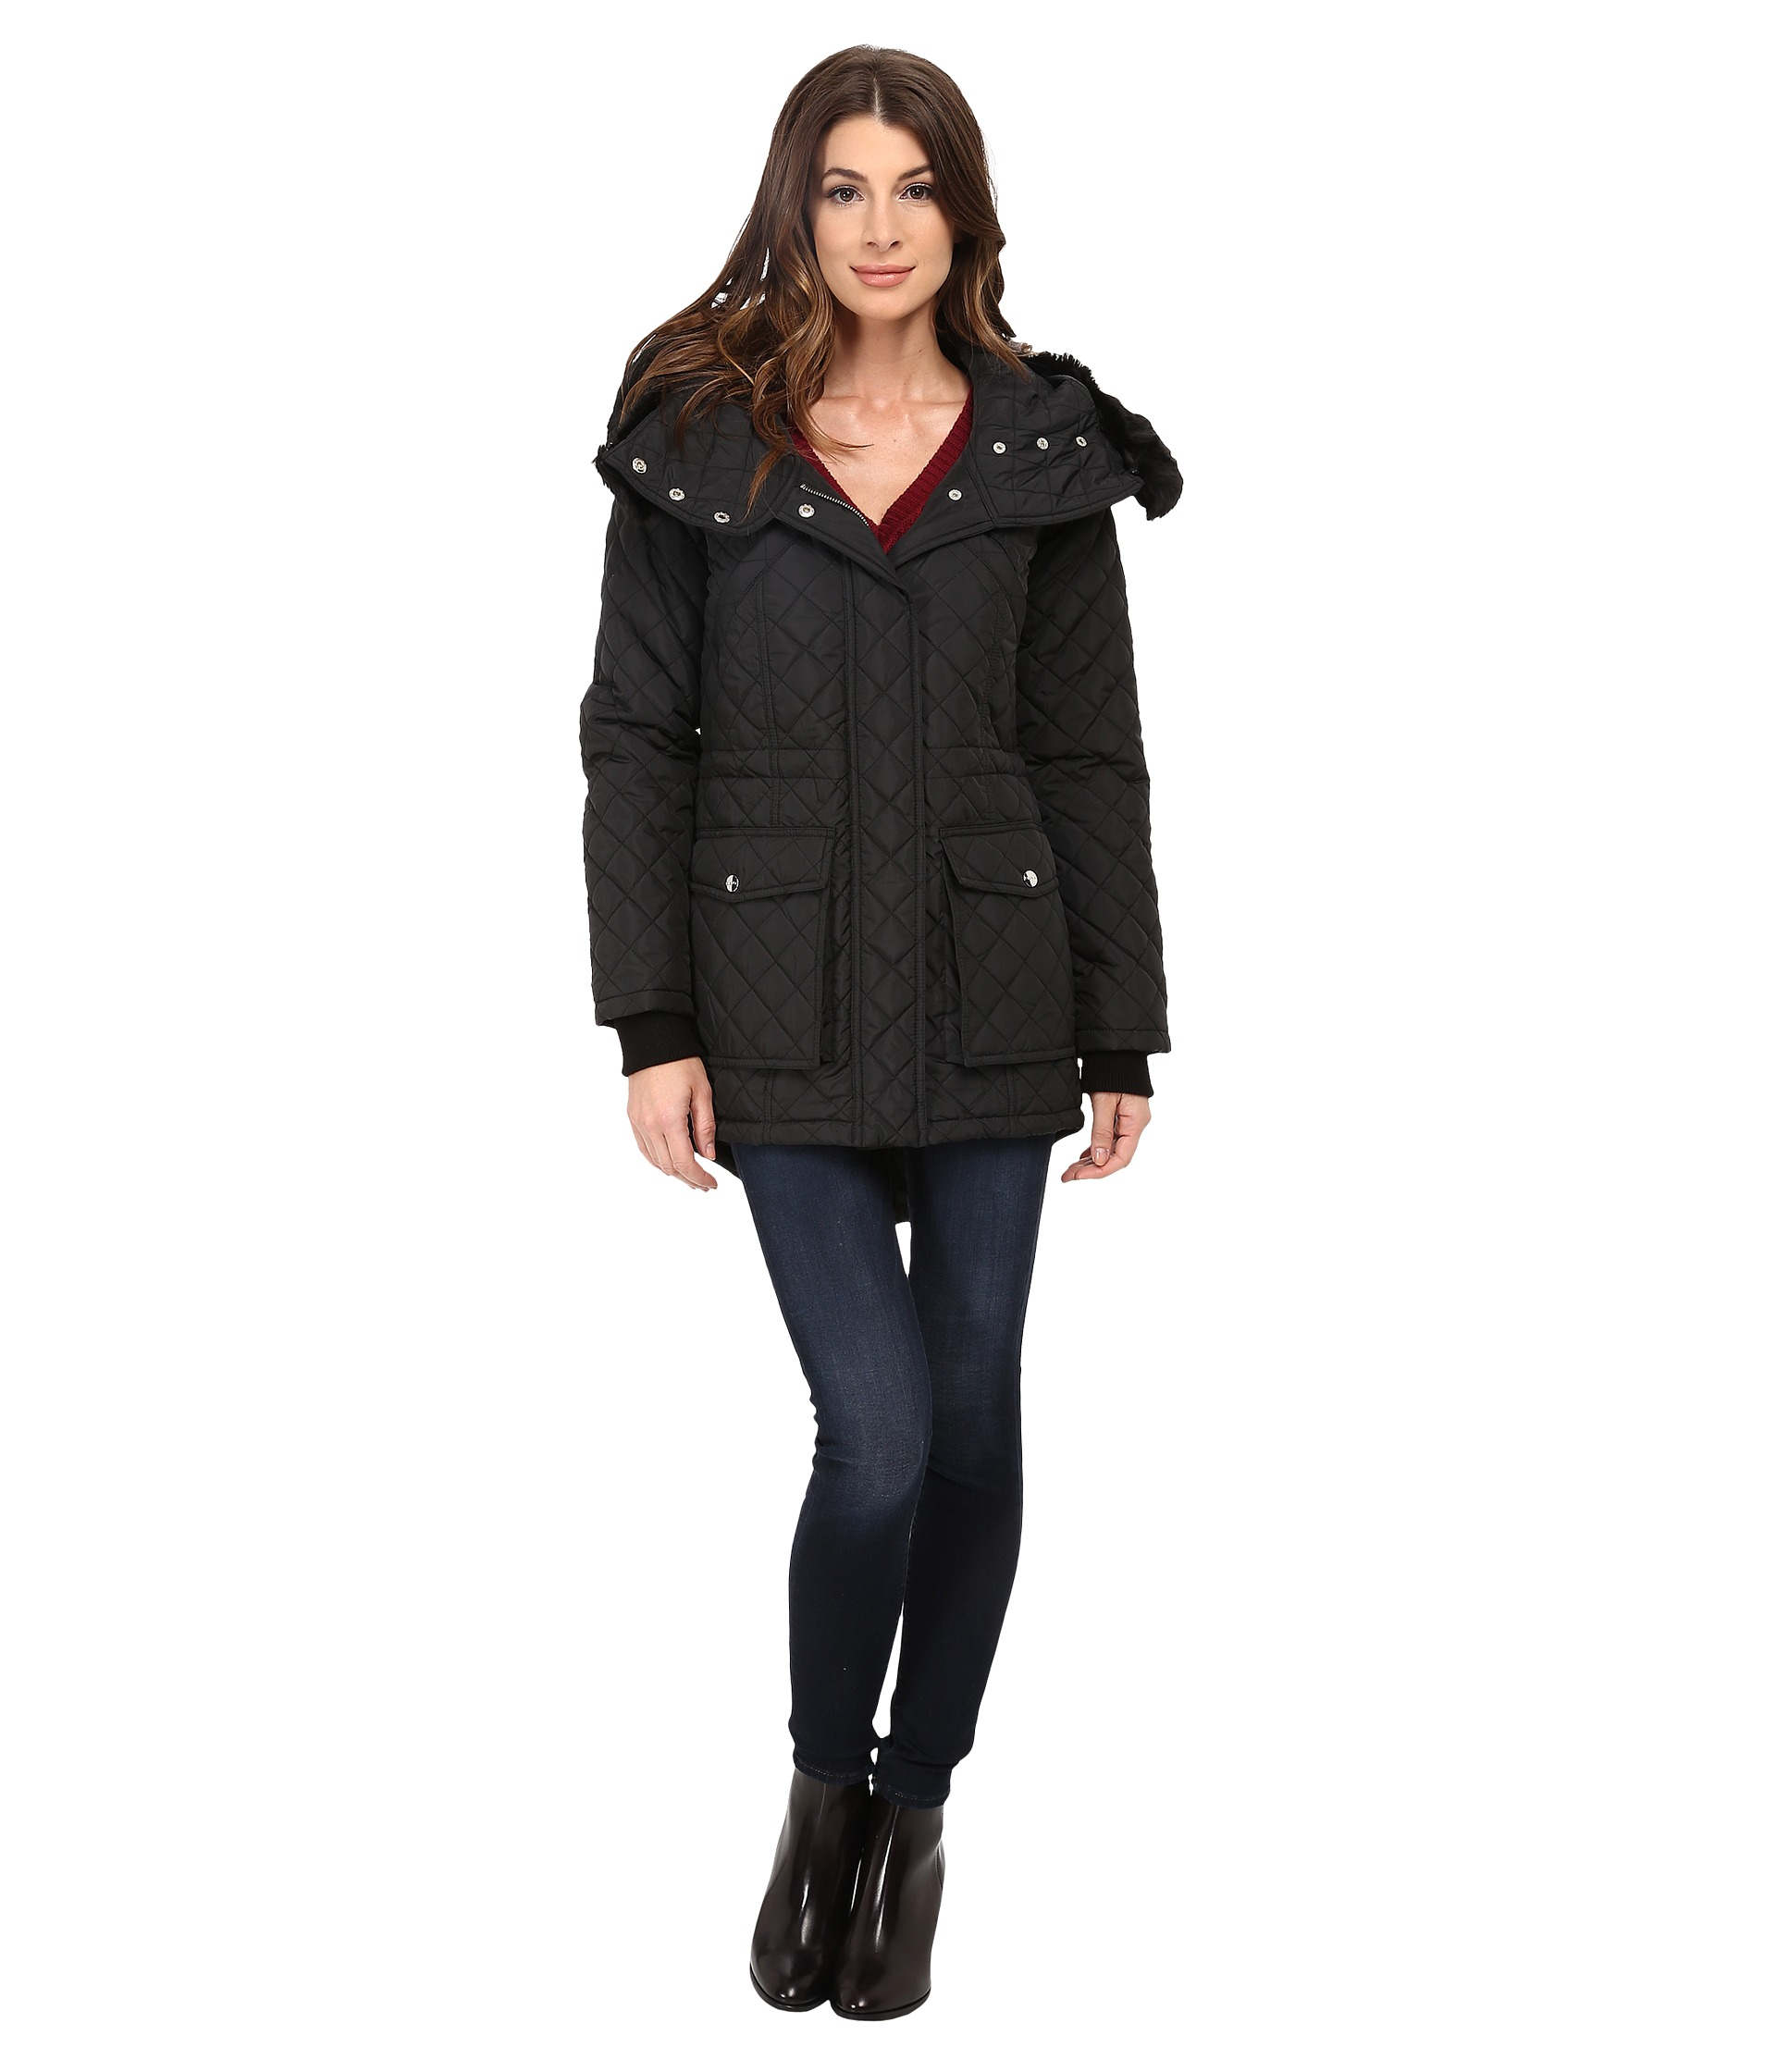 Womens Winter Coats On Clearance - Tradingbasis